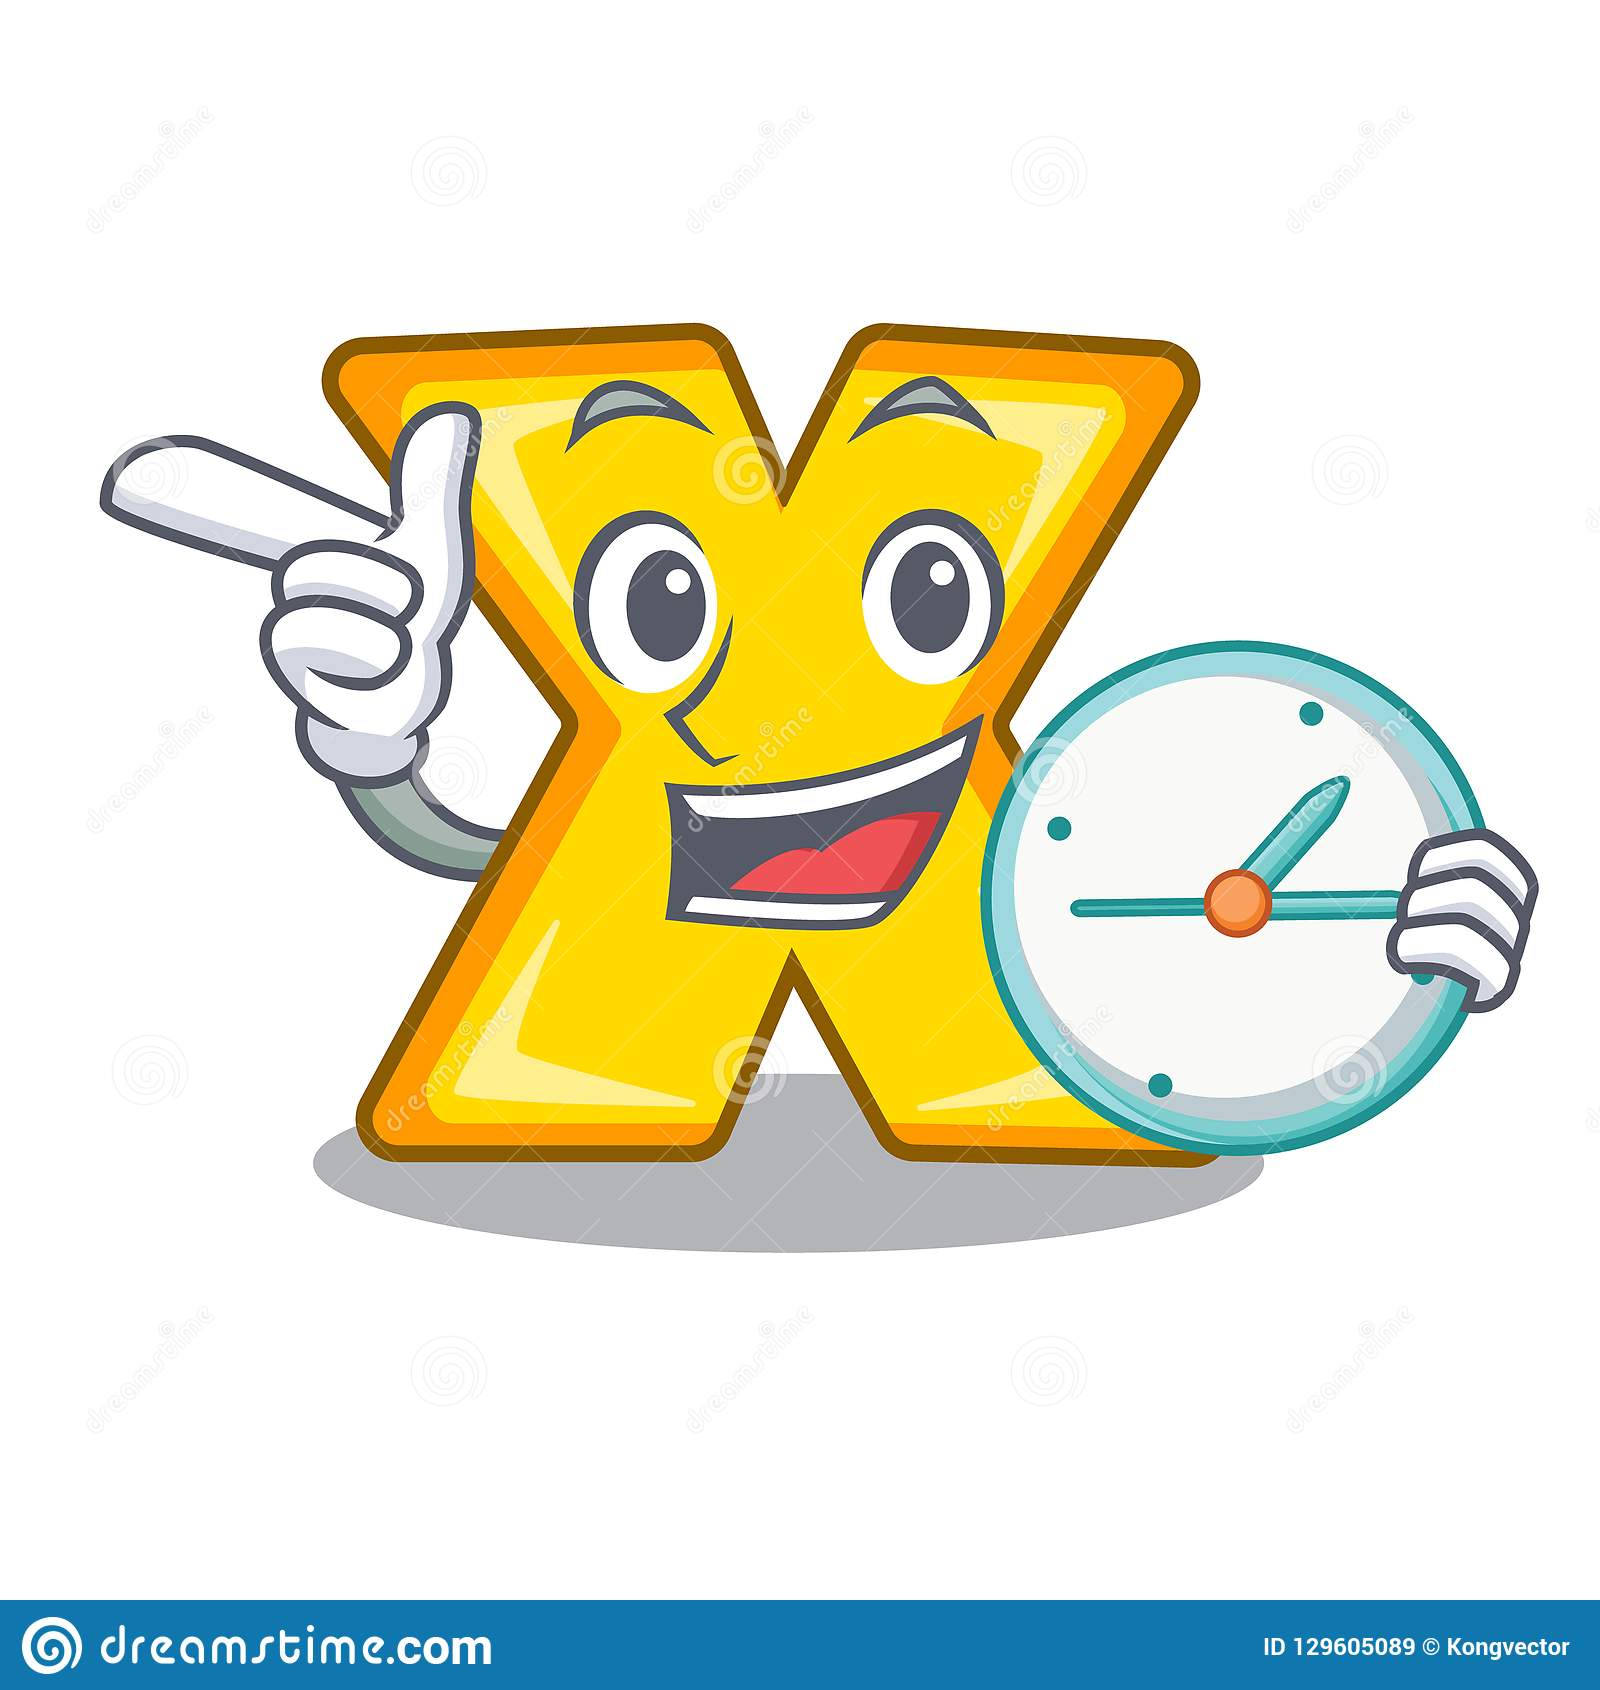 With Clock Cartoon Multiply Of A Delete Stock Vector Illustration